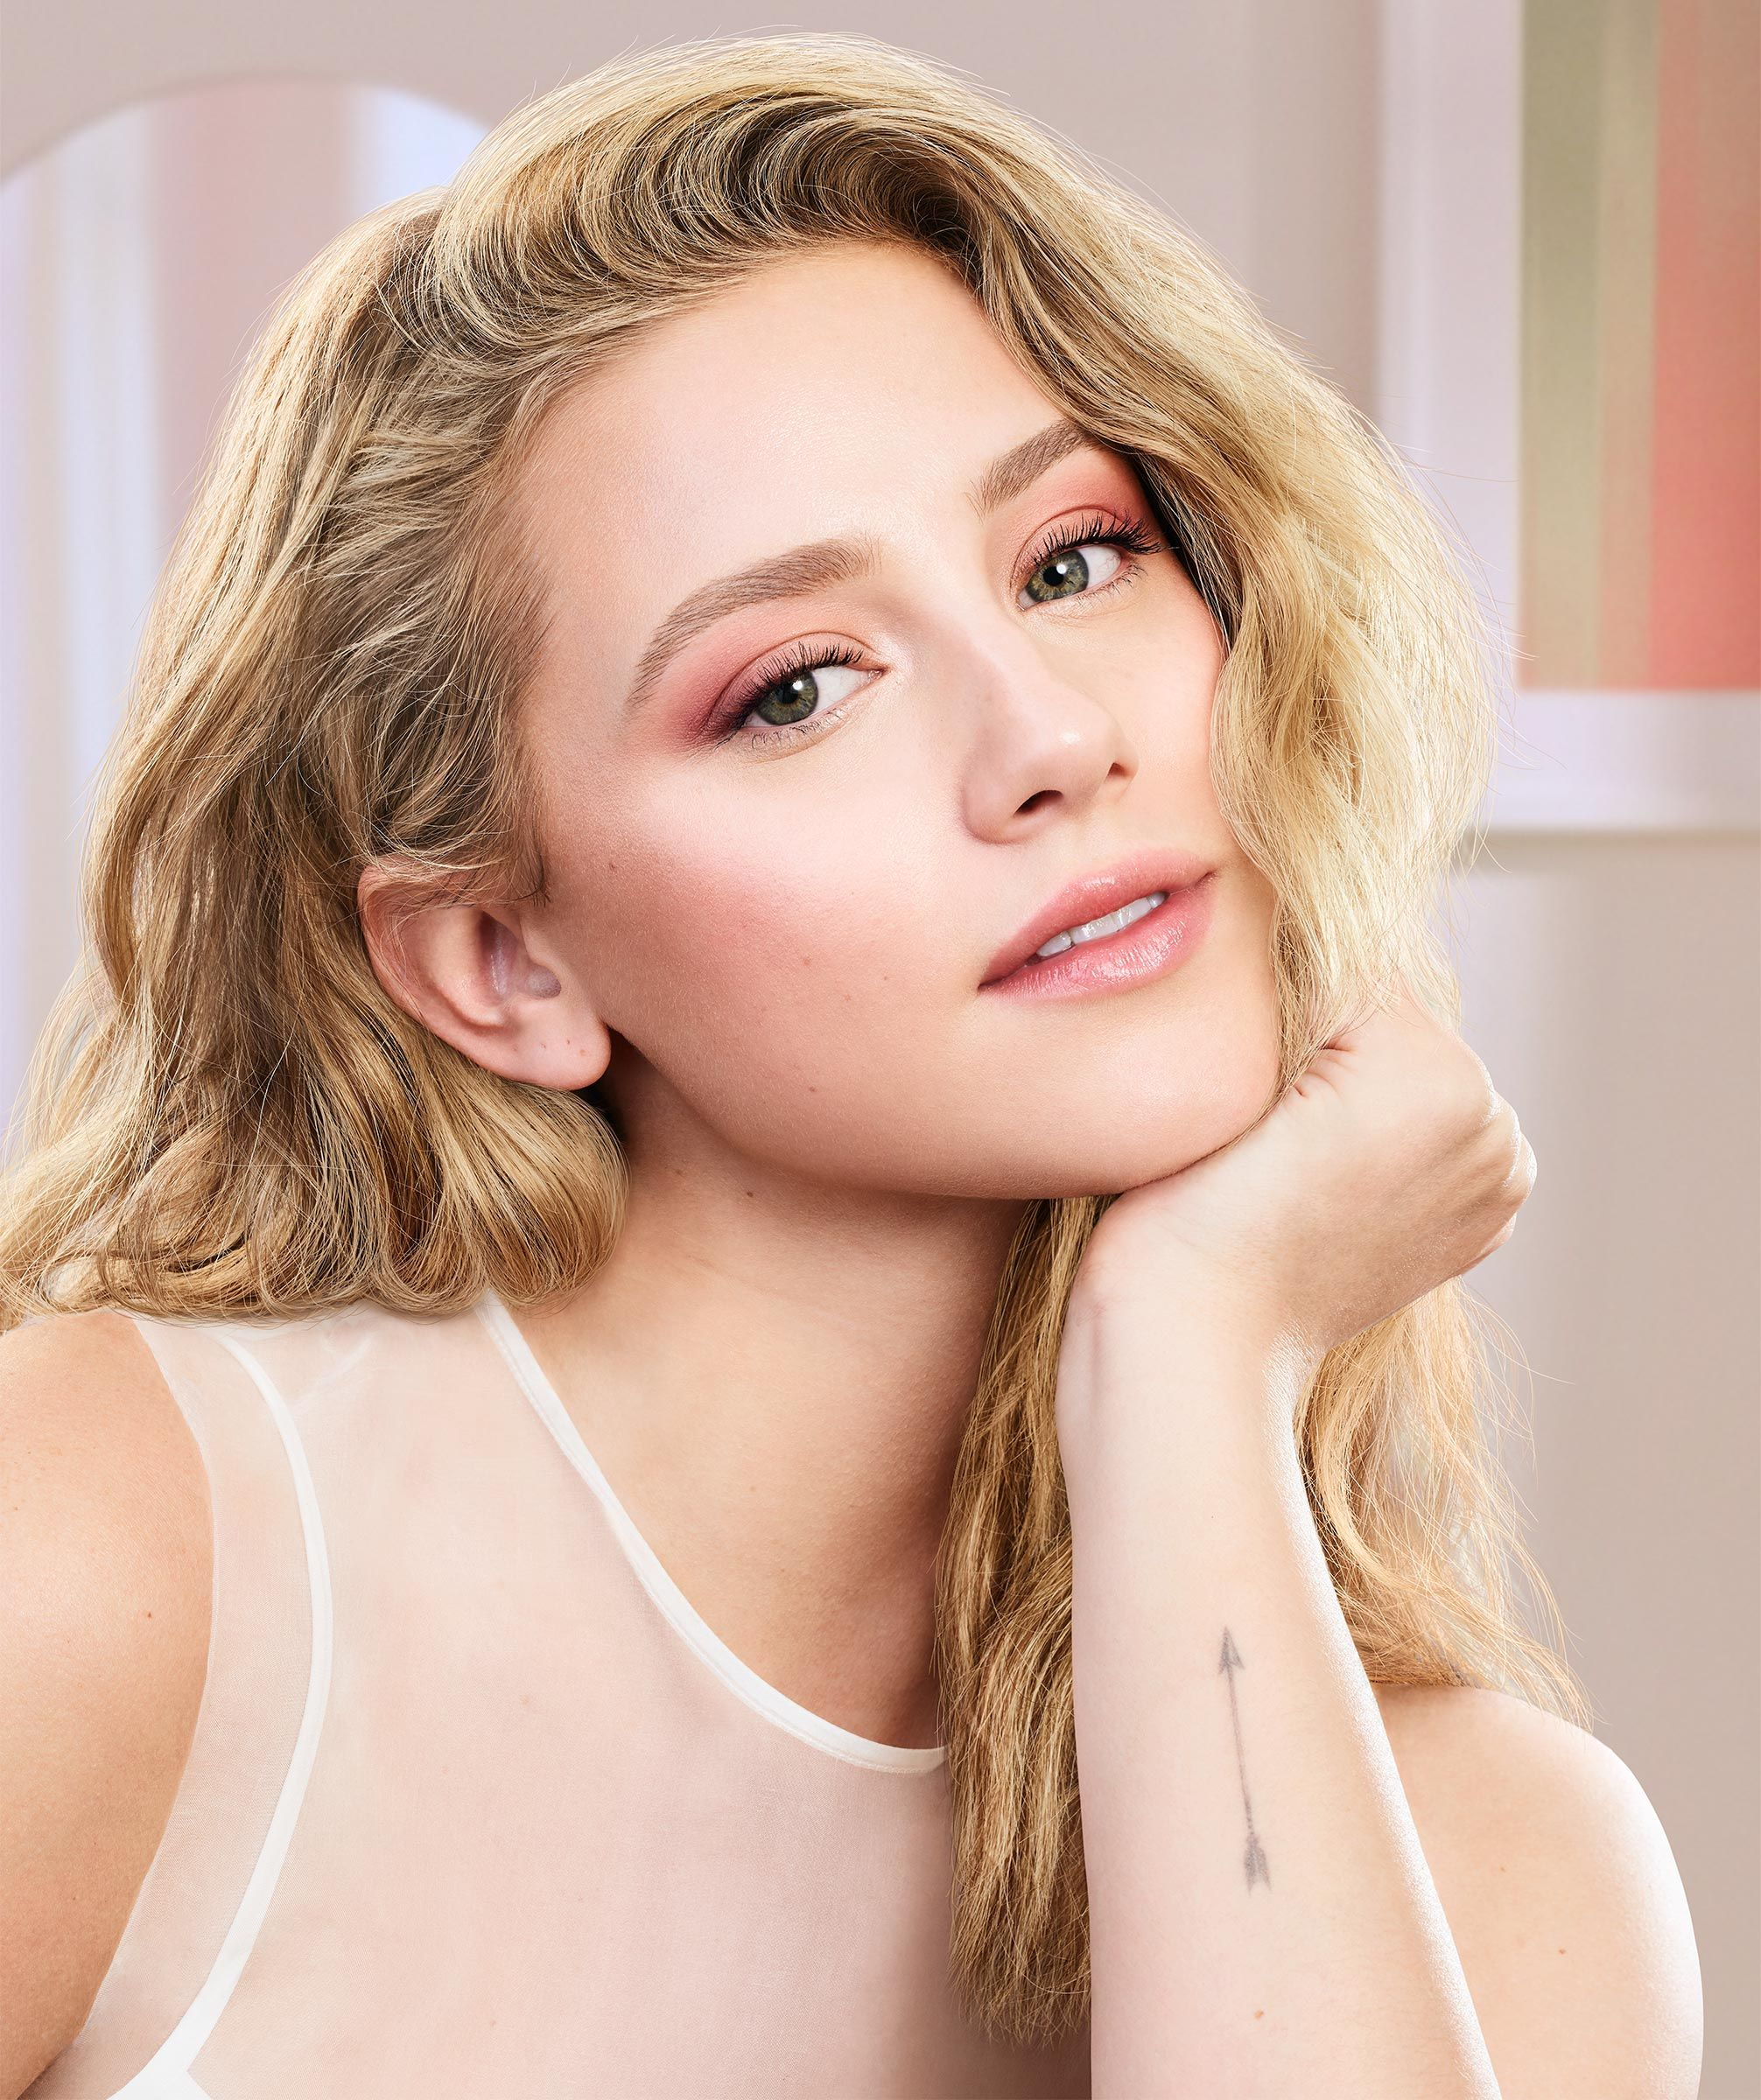 Lili Reinhart Makes Her CoverGirl Debut in New Clean Fresh Campaign: 'Natural Skin Is Beautiful' | Covergirl, Lili reinhart, Celebrity makeup